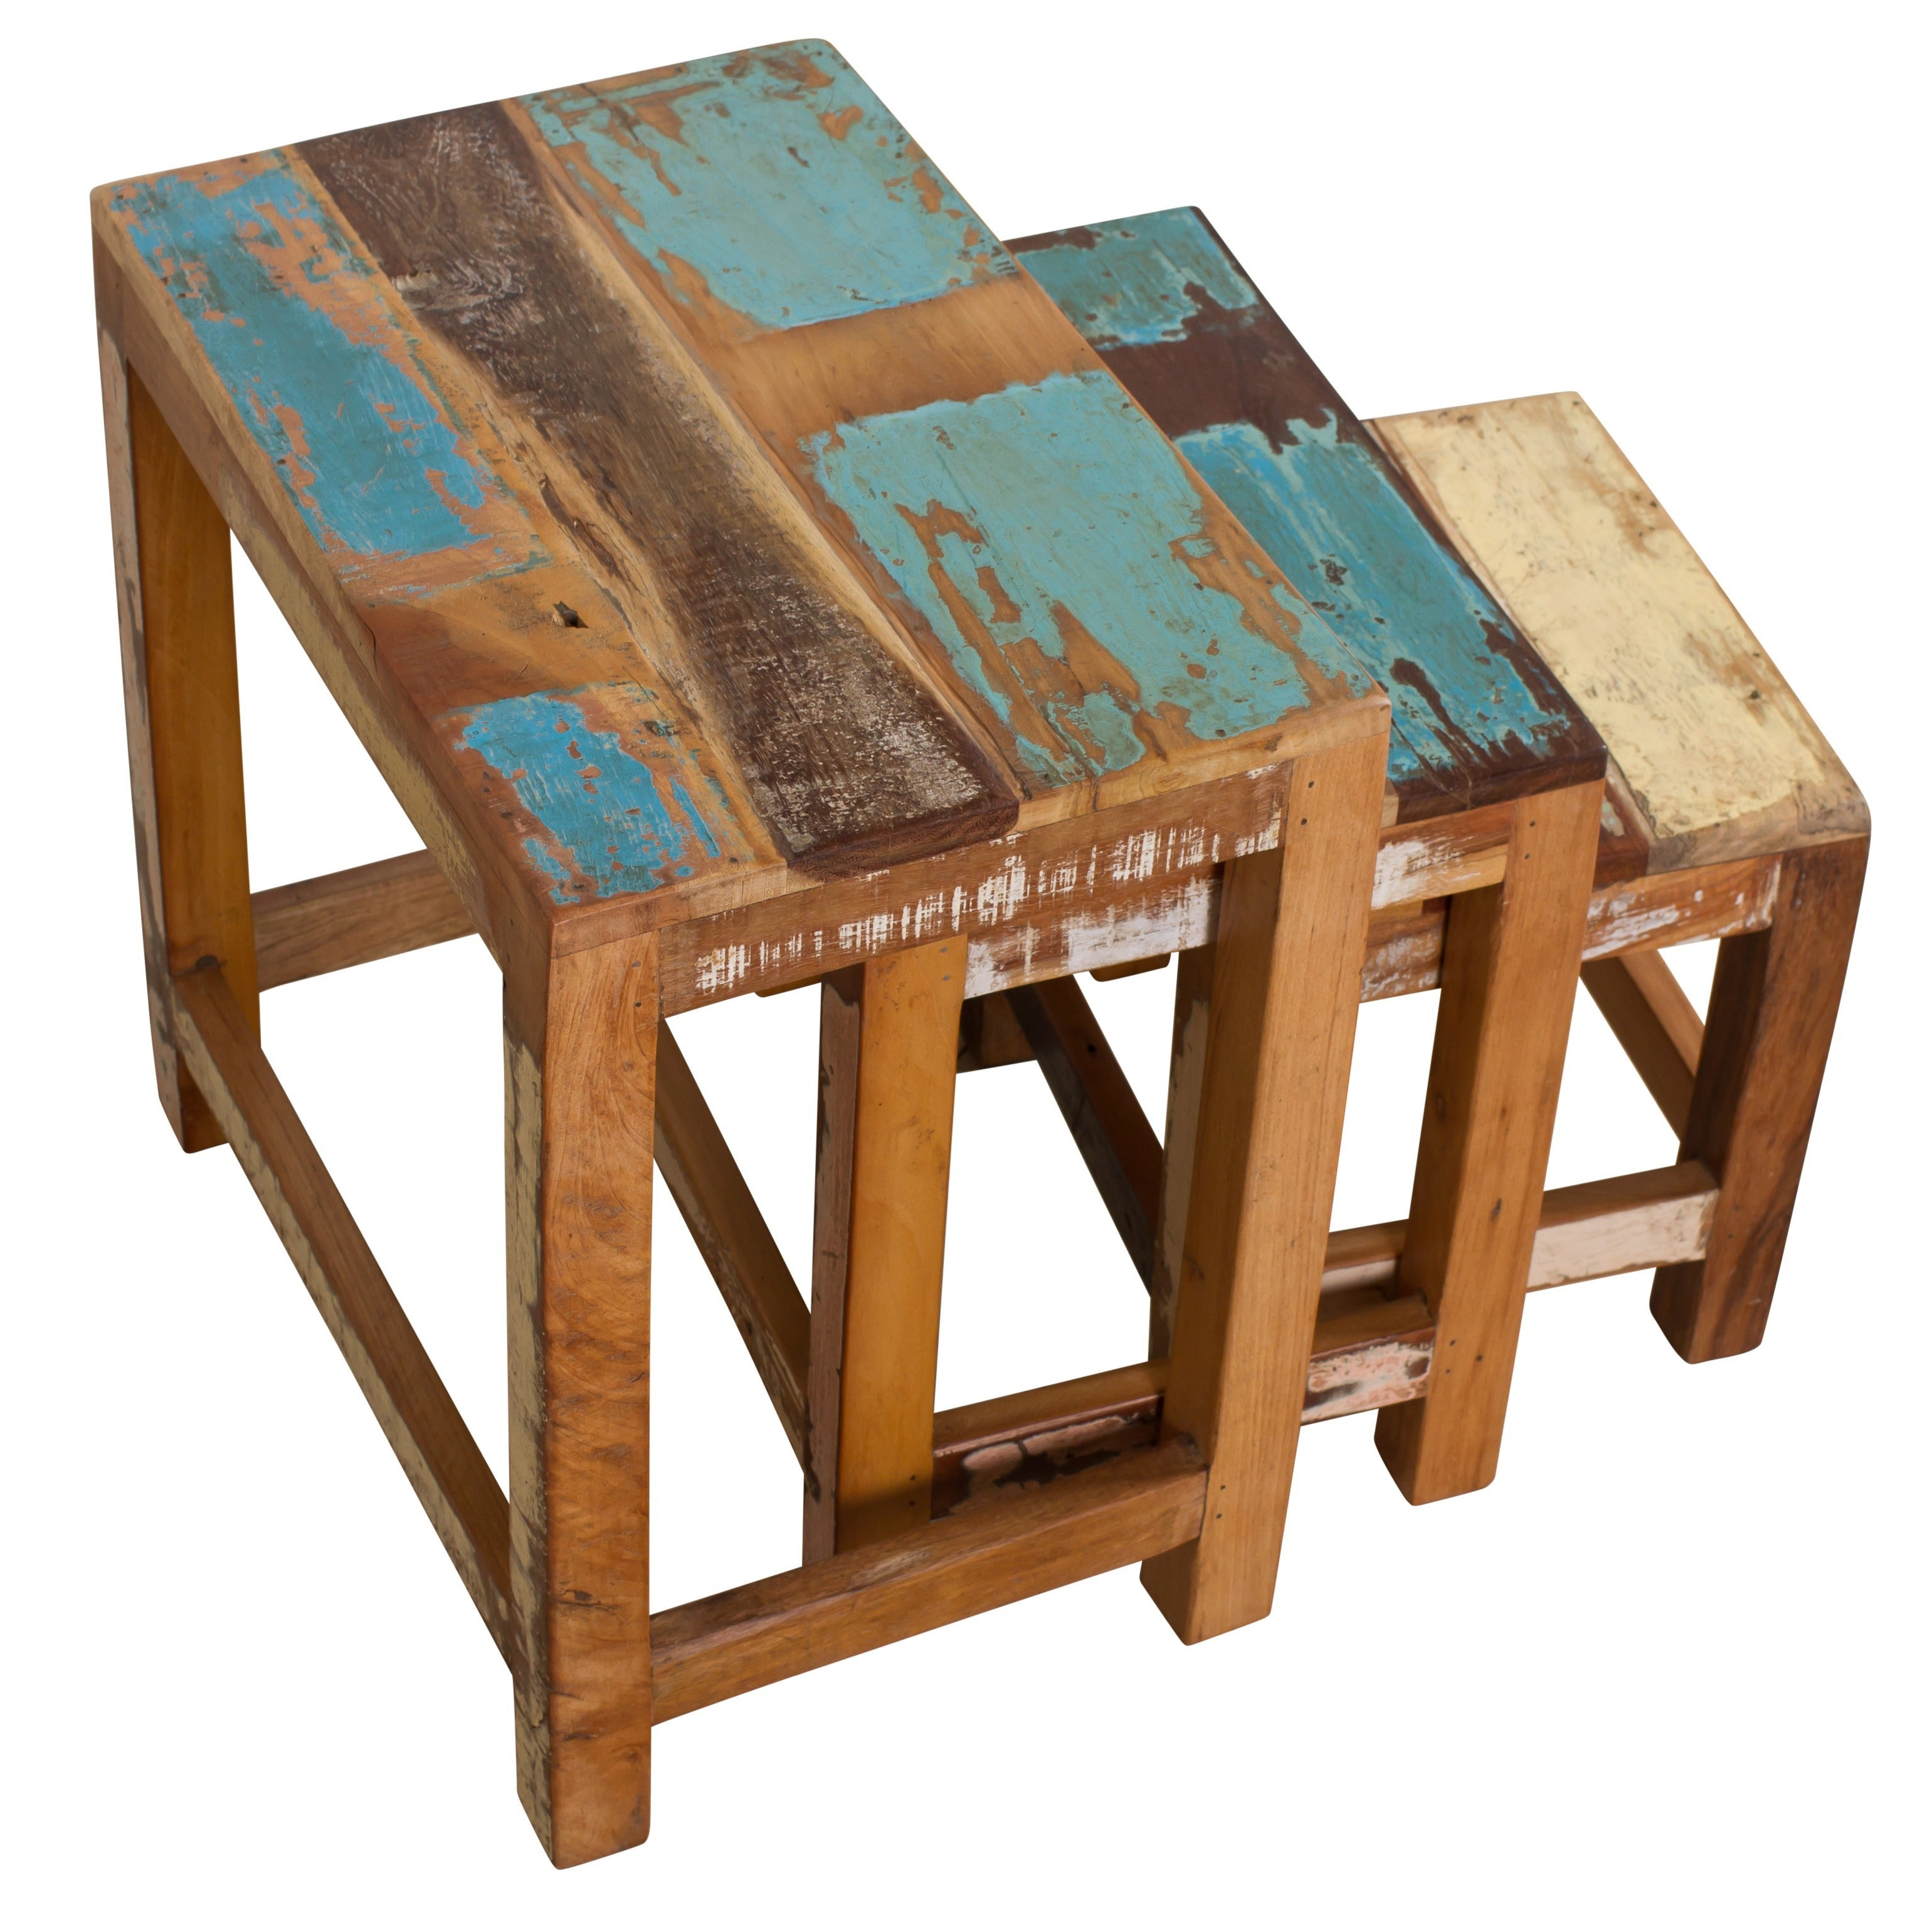 Newest Handmade Whitewashed Stripped Wood Tables Intended For Handmade Stripped Wood 3 Piece Nesting Table Trio (India) (View 10 of 20)